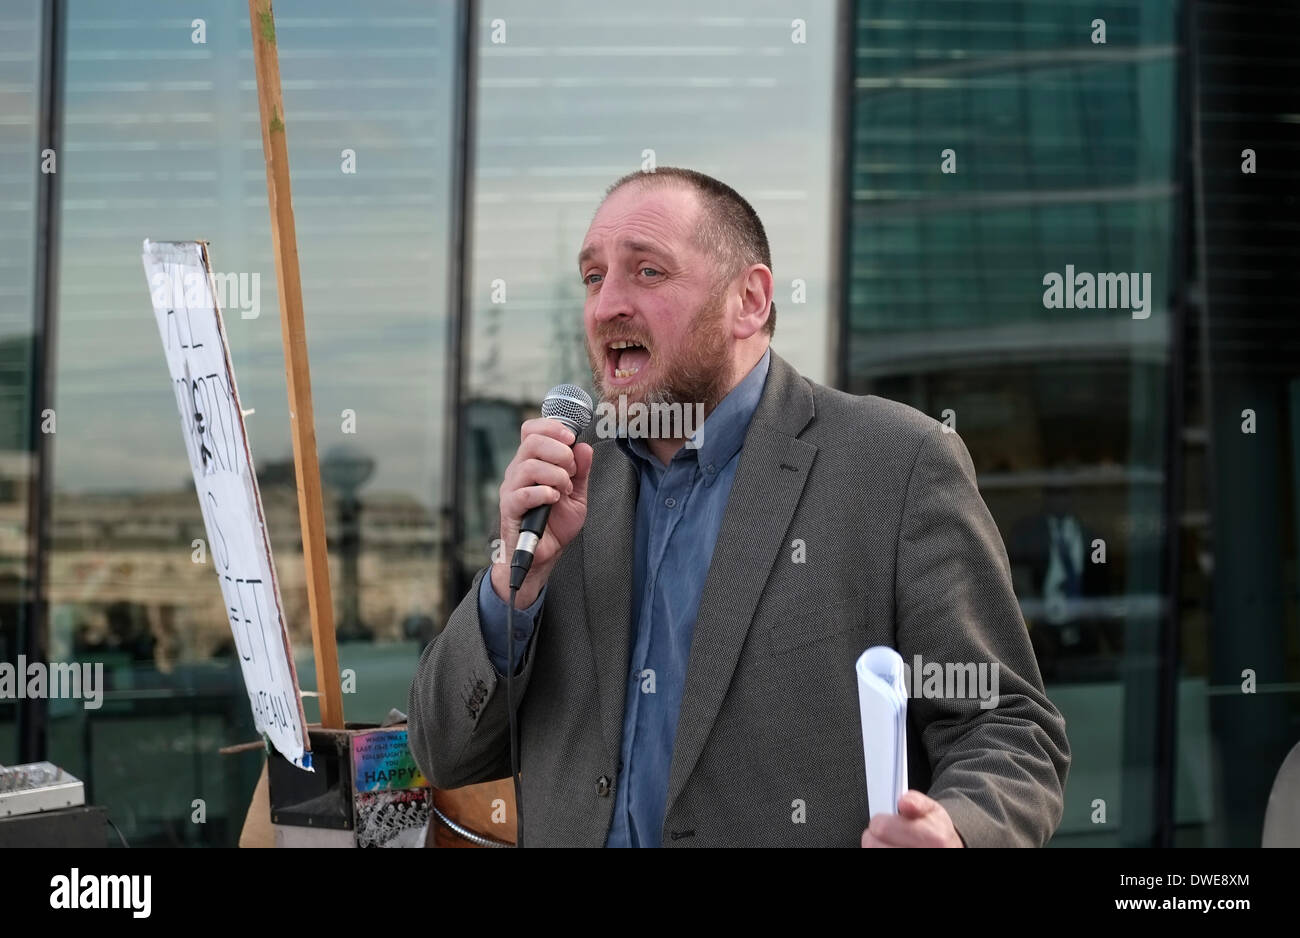 London, UK. 6th March 2014. A London assembly member talks as Londoners gather to protest against the Mayor's involvement in MIPIM a property fair in Cannes. Credit:  Rachel Megawhat/Alamy Live News - Stock Image